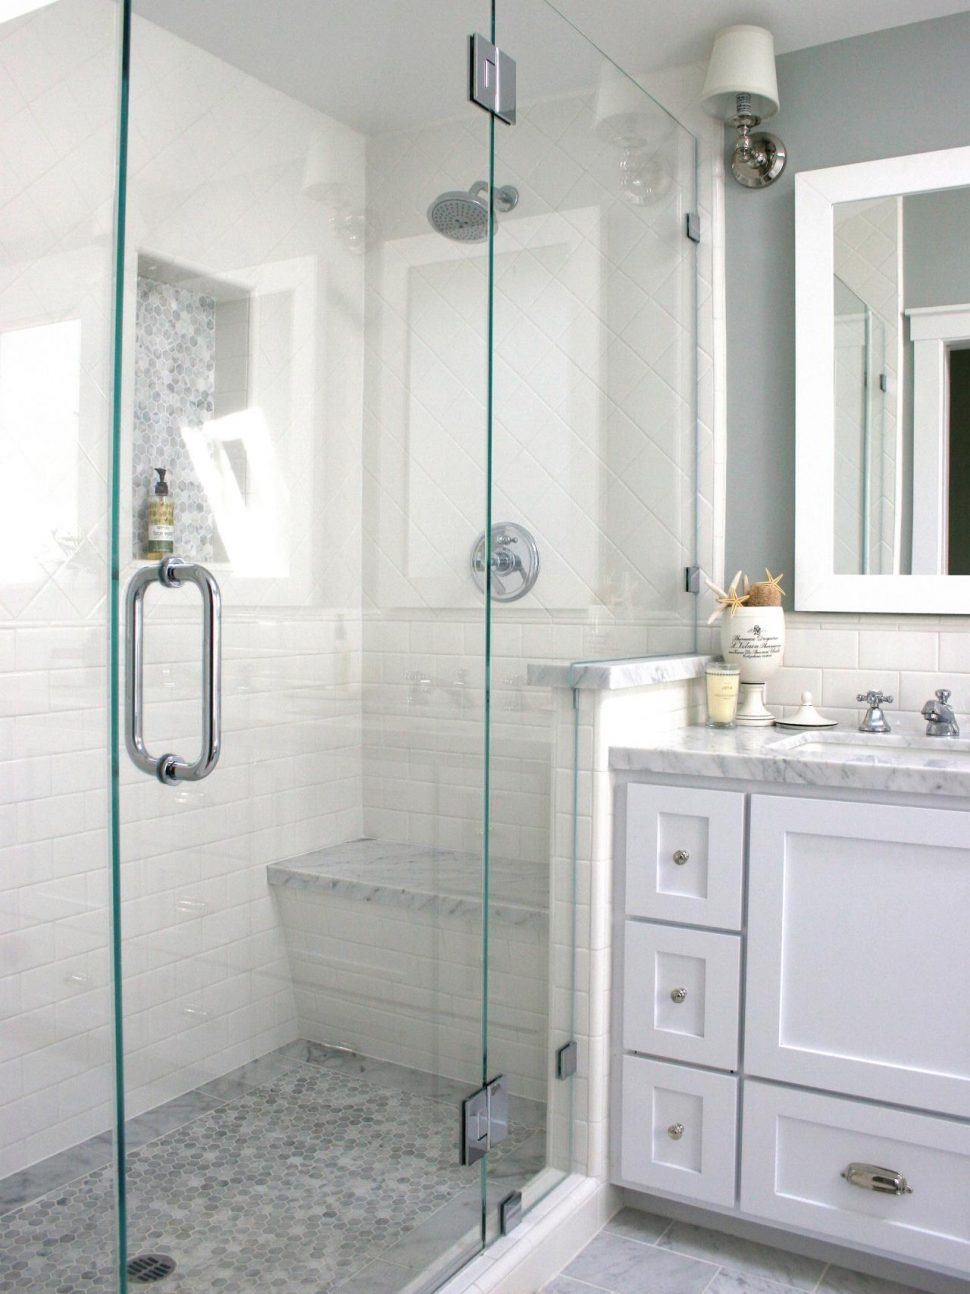 Small Walk In Shower Elegant Walk In Shower Fabulous Small Enclosures Bathroom Ideas with